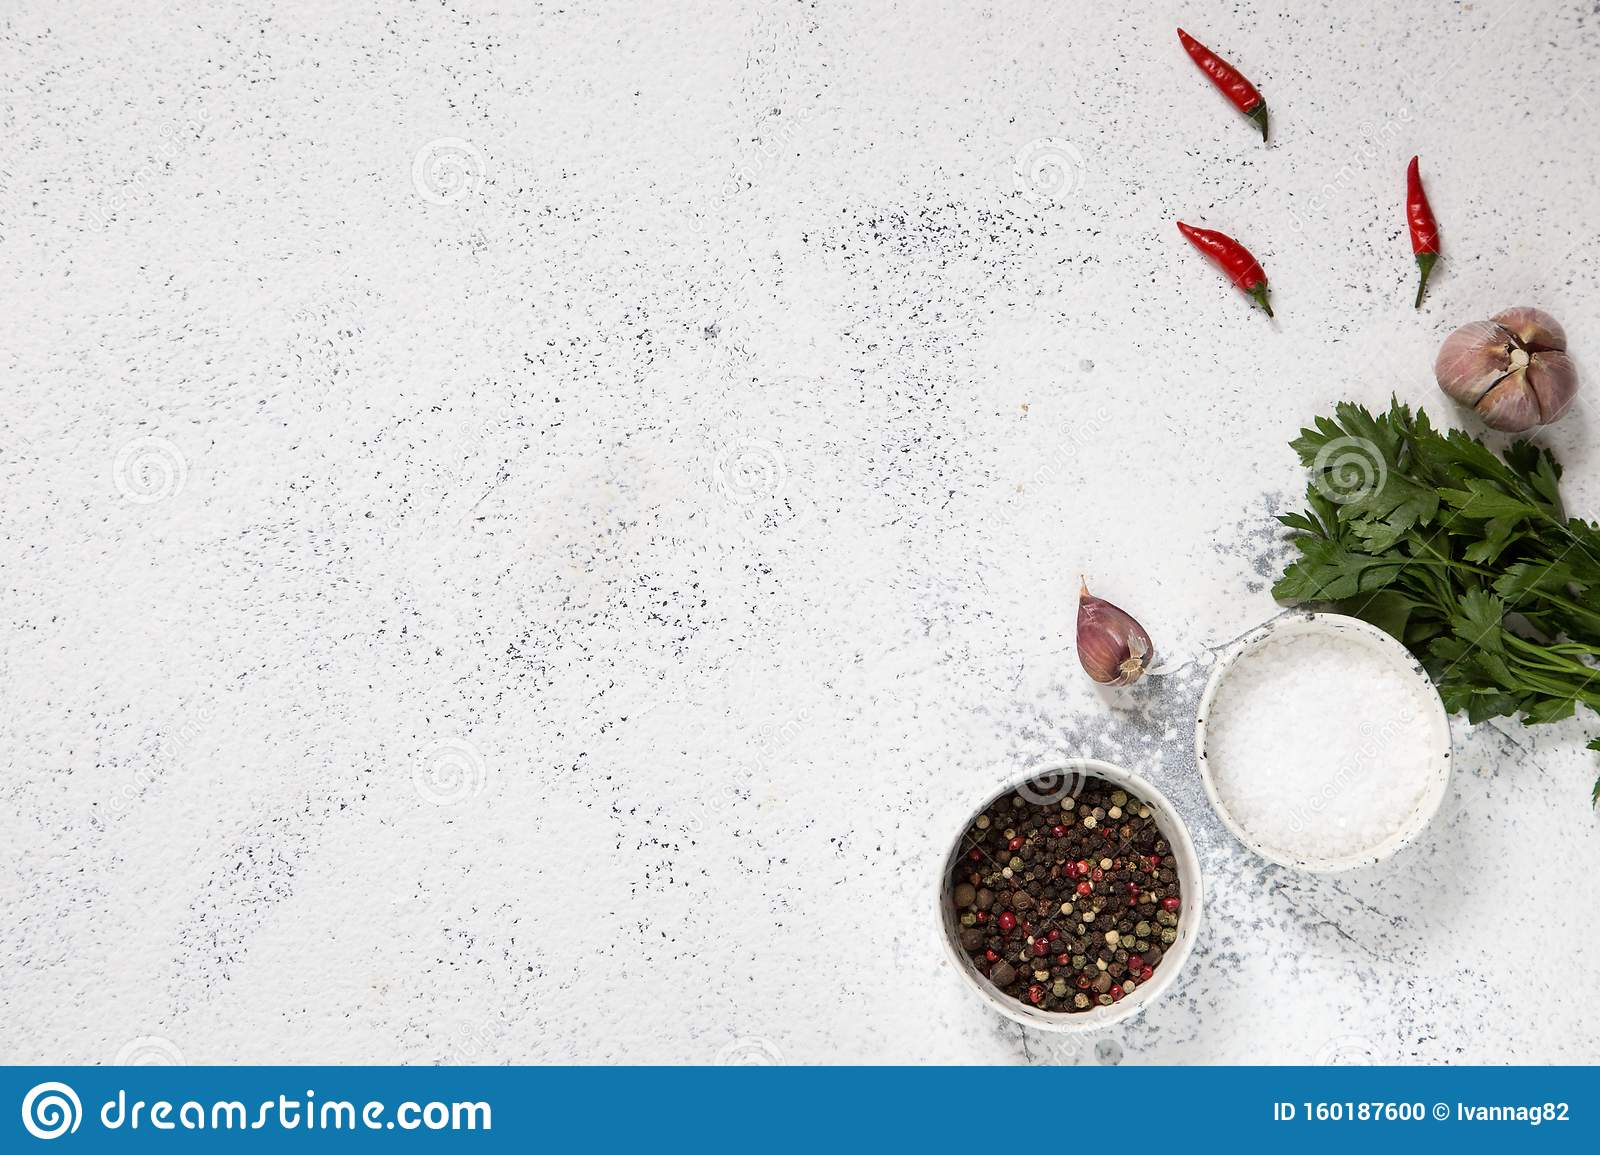 Spices Herbs For Cooking On White Concrete Backdrop Top View With Copy Space For Text Menu Recipe Mock Up Banner Background 4 Stock Photo Image Of Ingredient Above 160187600